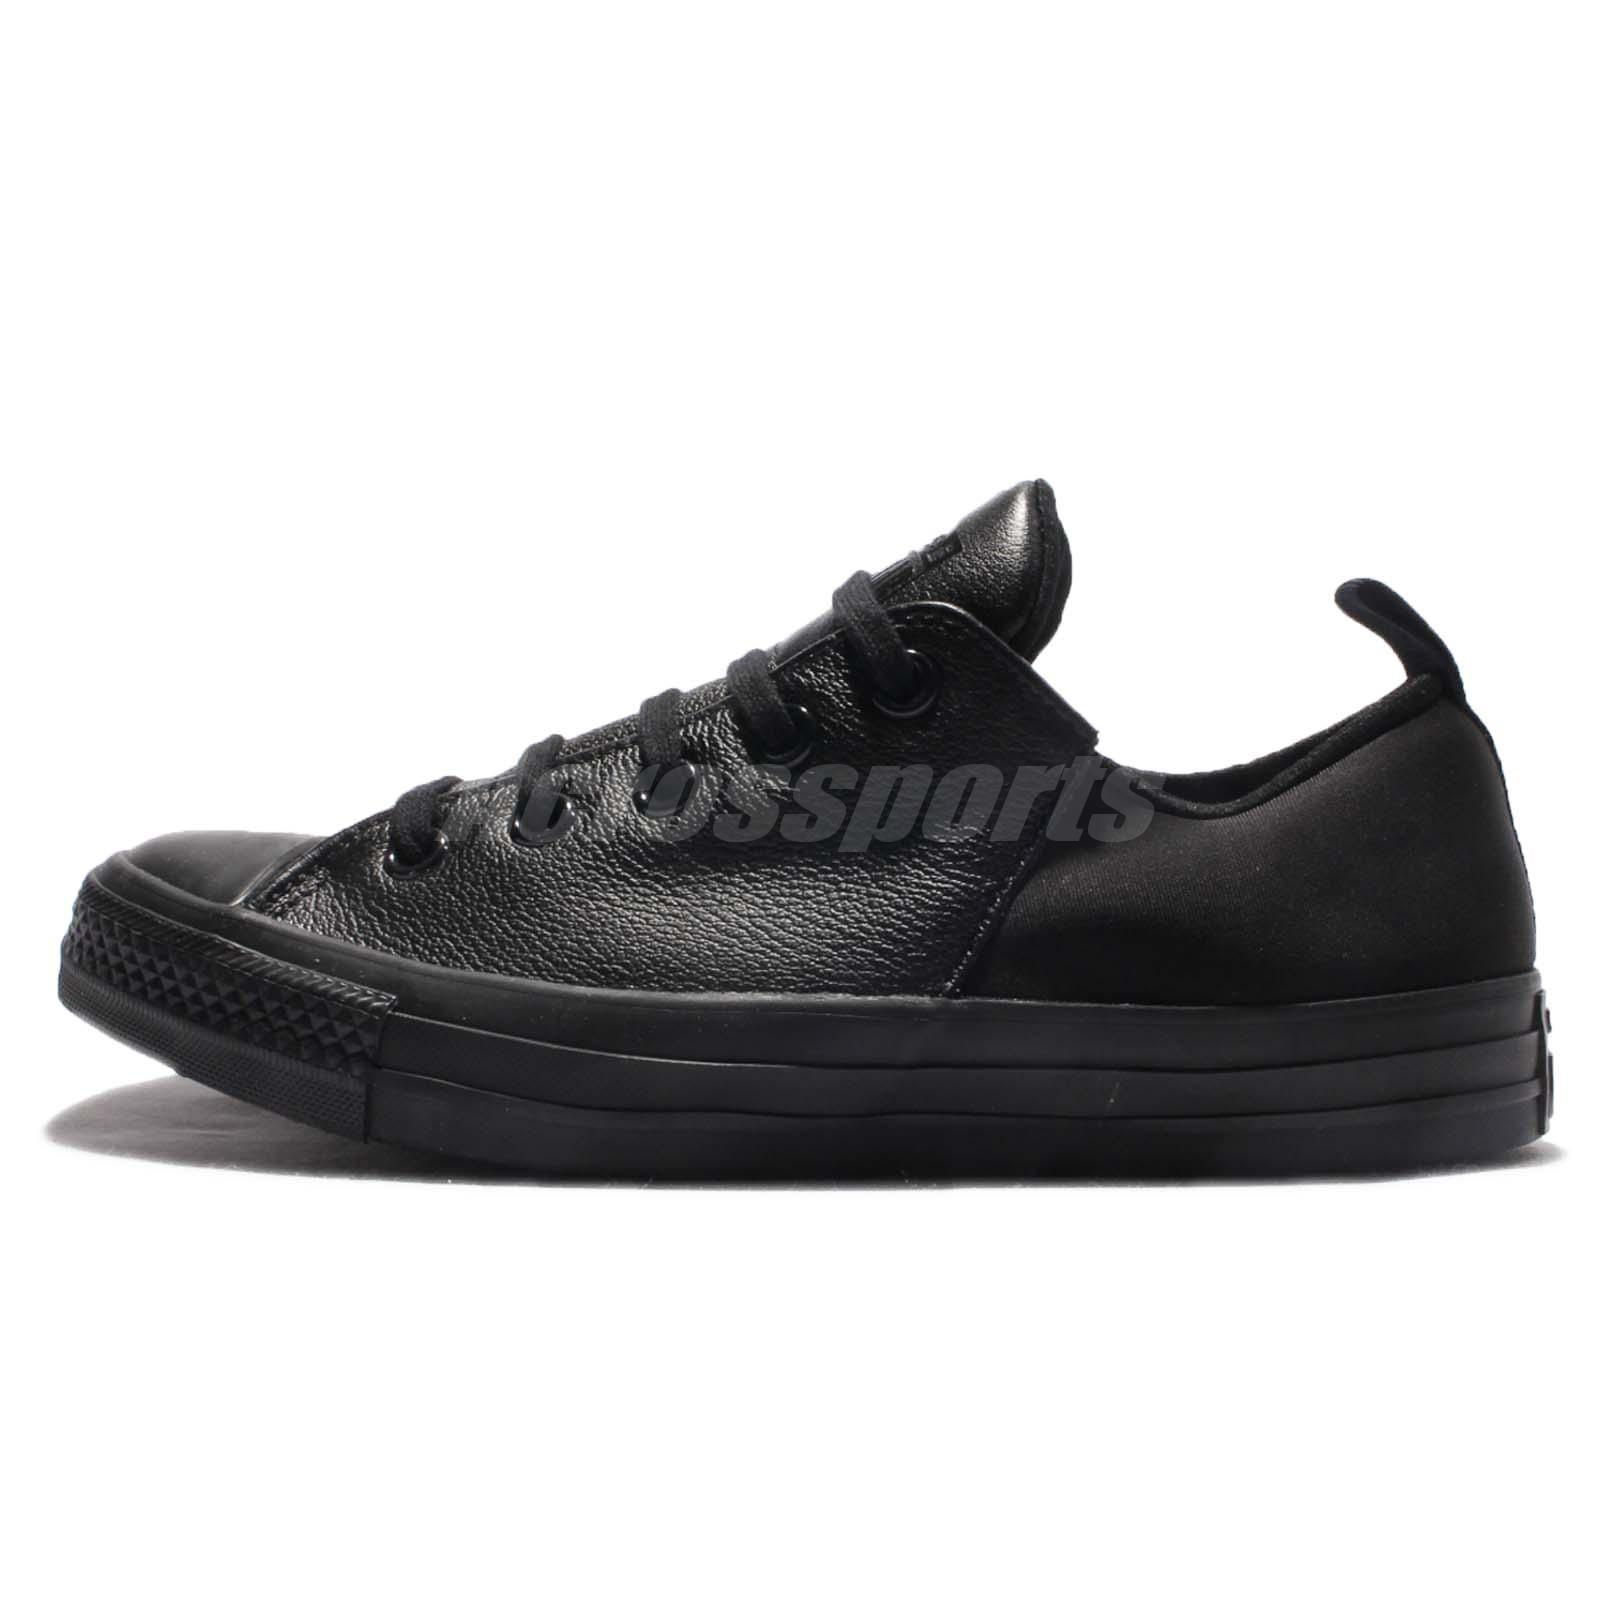 f6f01e3fad9b Converse Chuck Taylor All Star Abbey Monochrome Leather Black Women Shoe  553380C